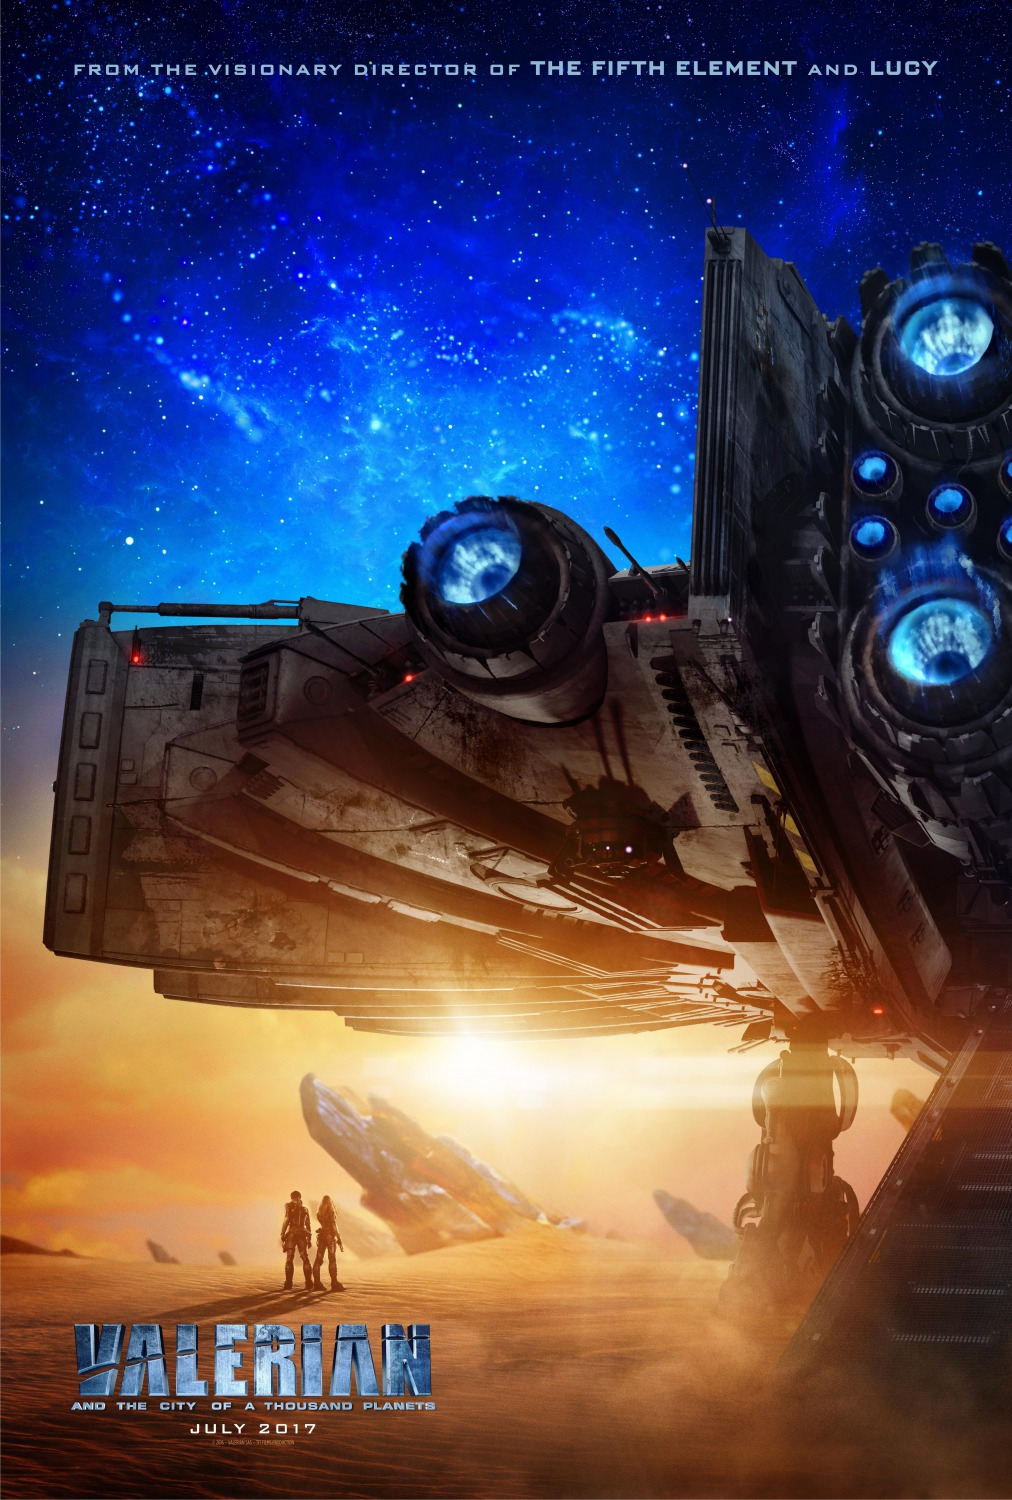 space station 76 2017 movie poster - photo #29